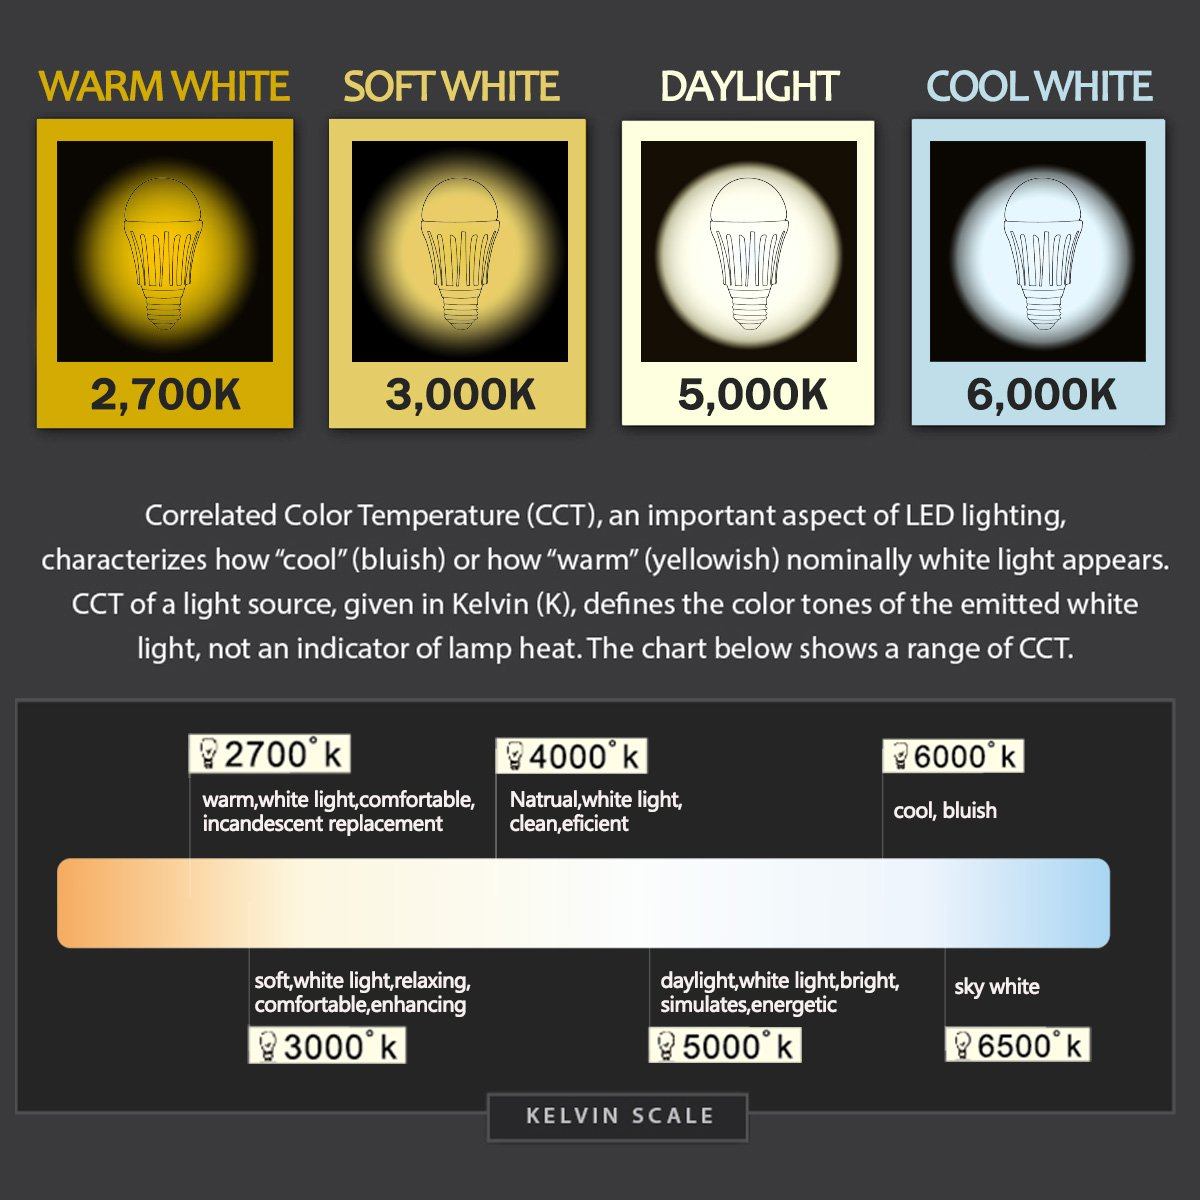 Lohas led bulb 12w led a19 daylight white 6000k 75 watt led lohas led bulb 12w led a19 daylight white 6000k 75 watt led light bulbs equivalent 1010lm e26 basemedium screw energy saving light bulbs led lights nvjuhfo Image collections